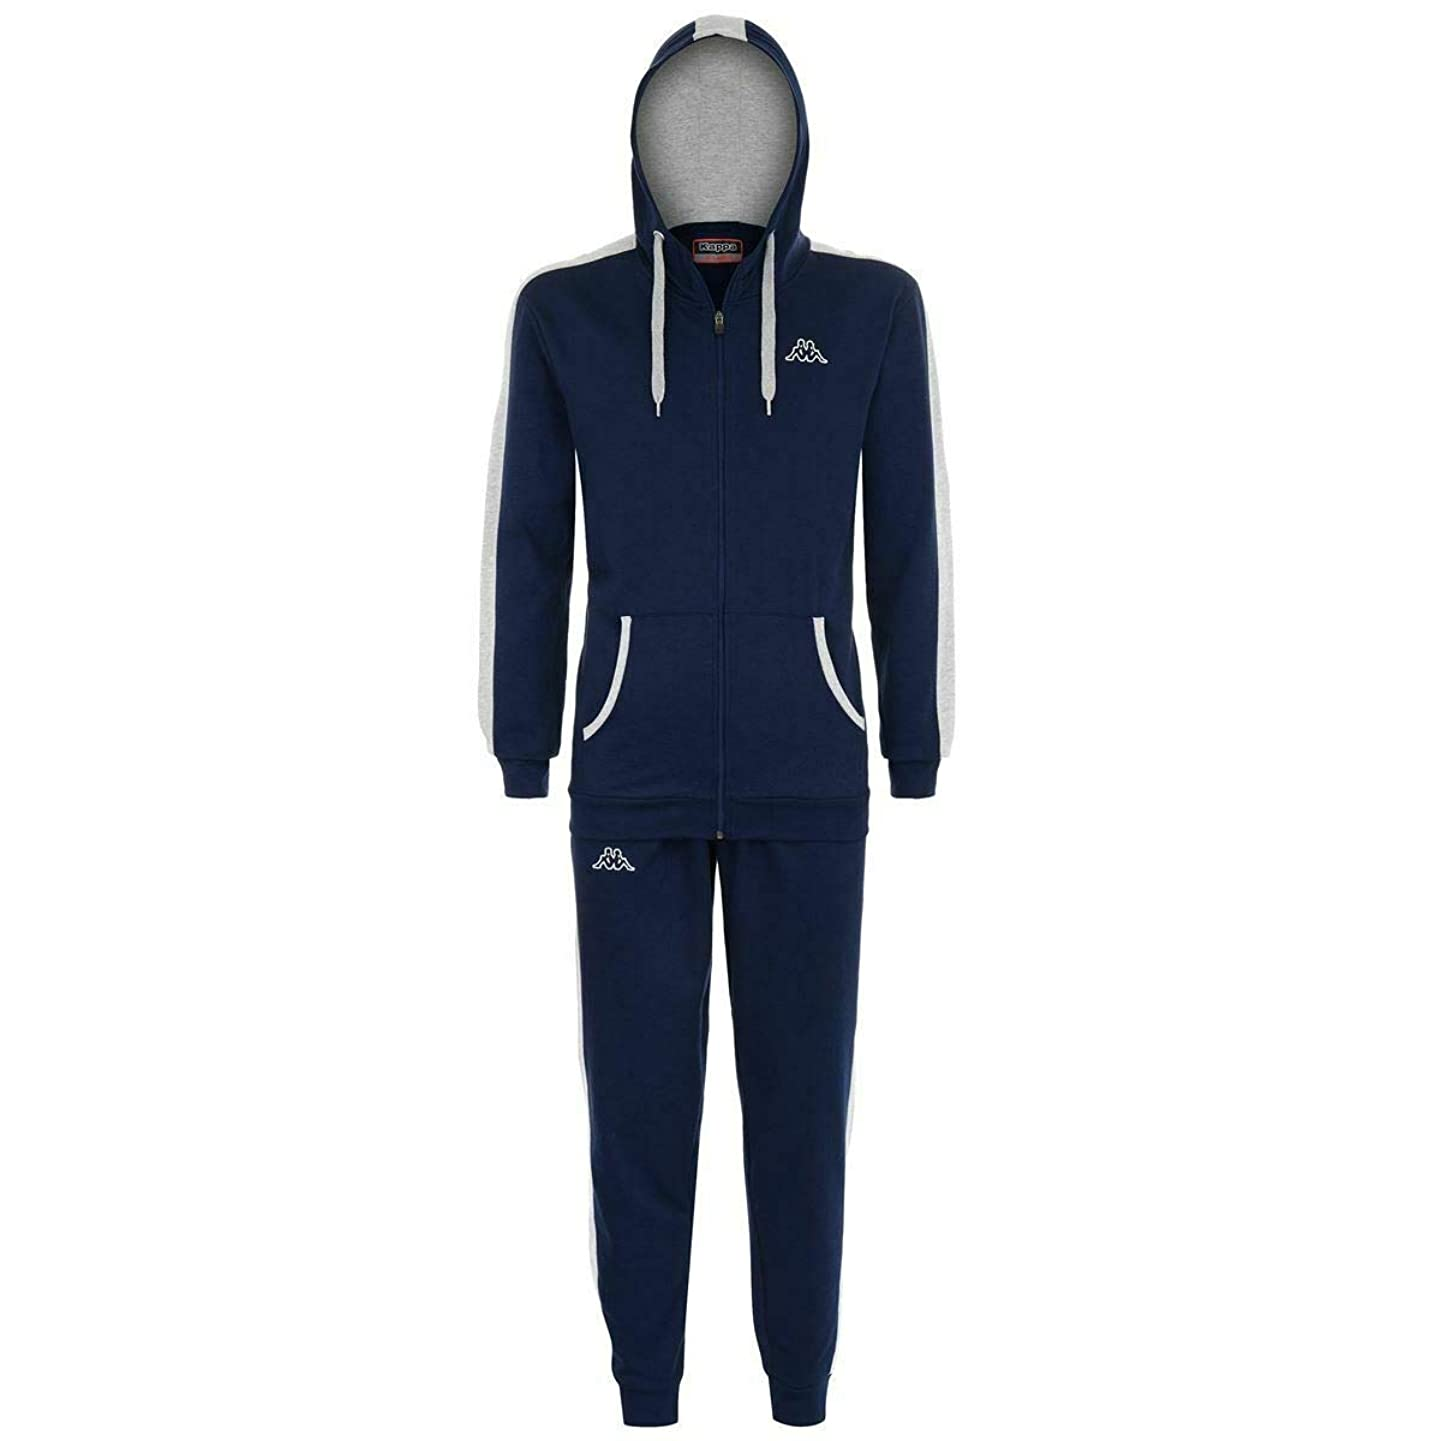 Kappa Tracksuit Men KAPPA Navy Blue Hoodie Cotton Joggers Pants L